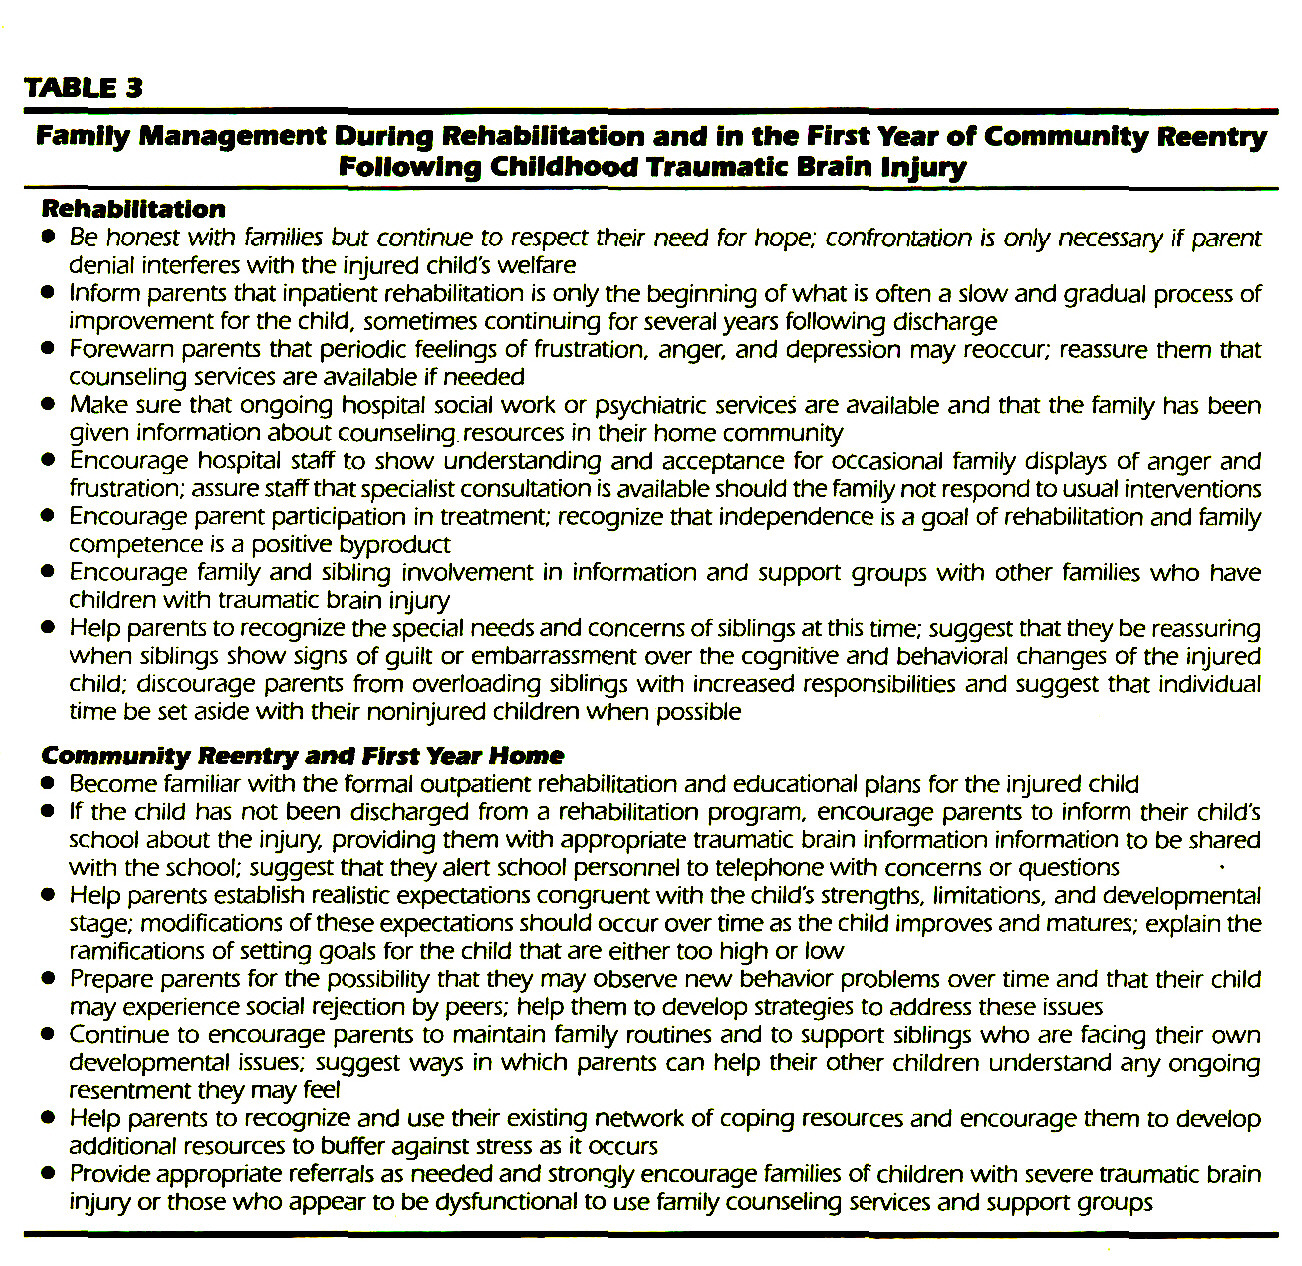 TABLE 3Family Management During Rehabilitation and in the First Year of Community Reentry Following Childhood Traumatic Brain Injury